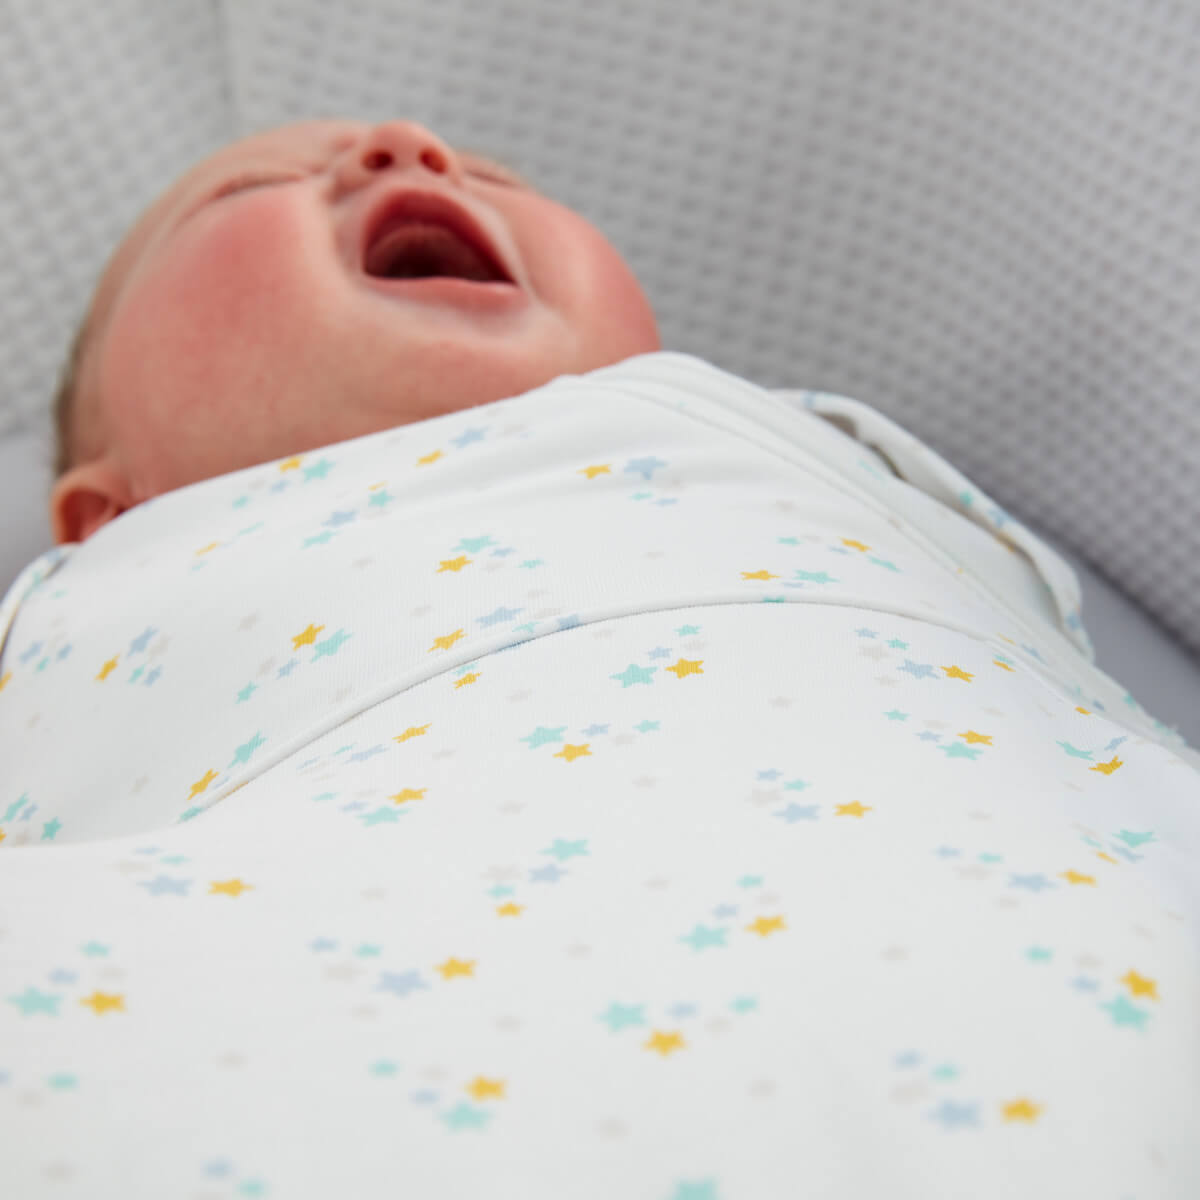 baby-yawning-in-cot-wearing-stars-grosnug